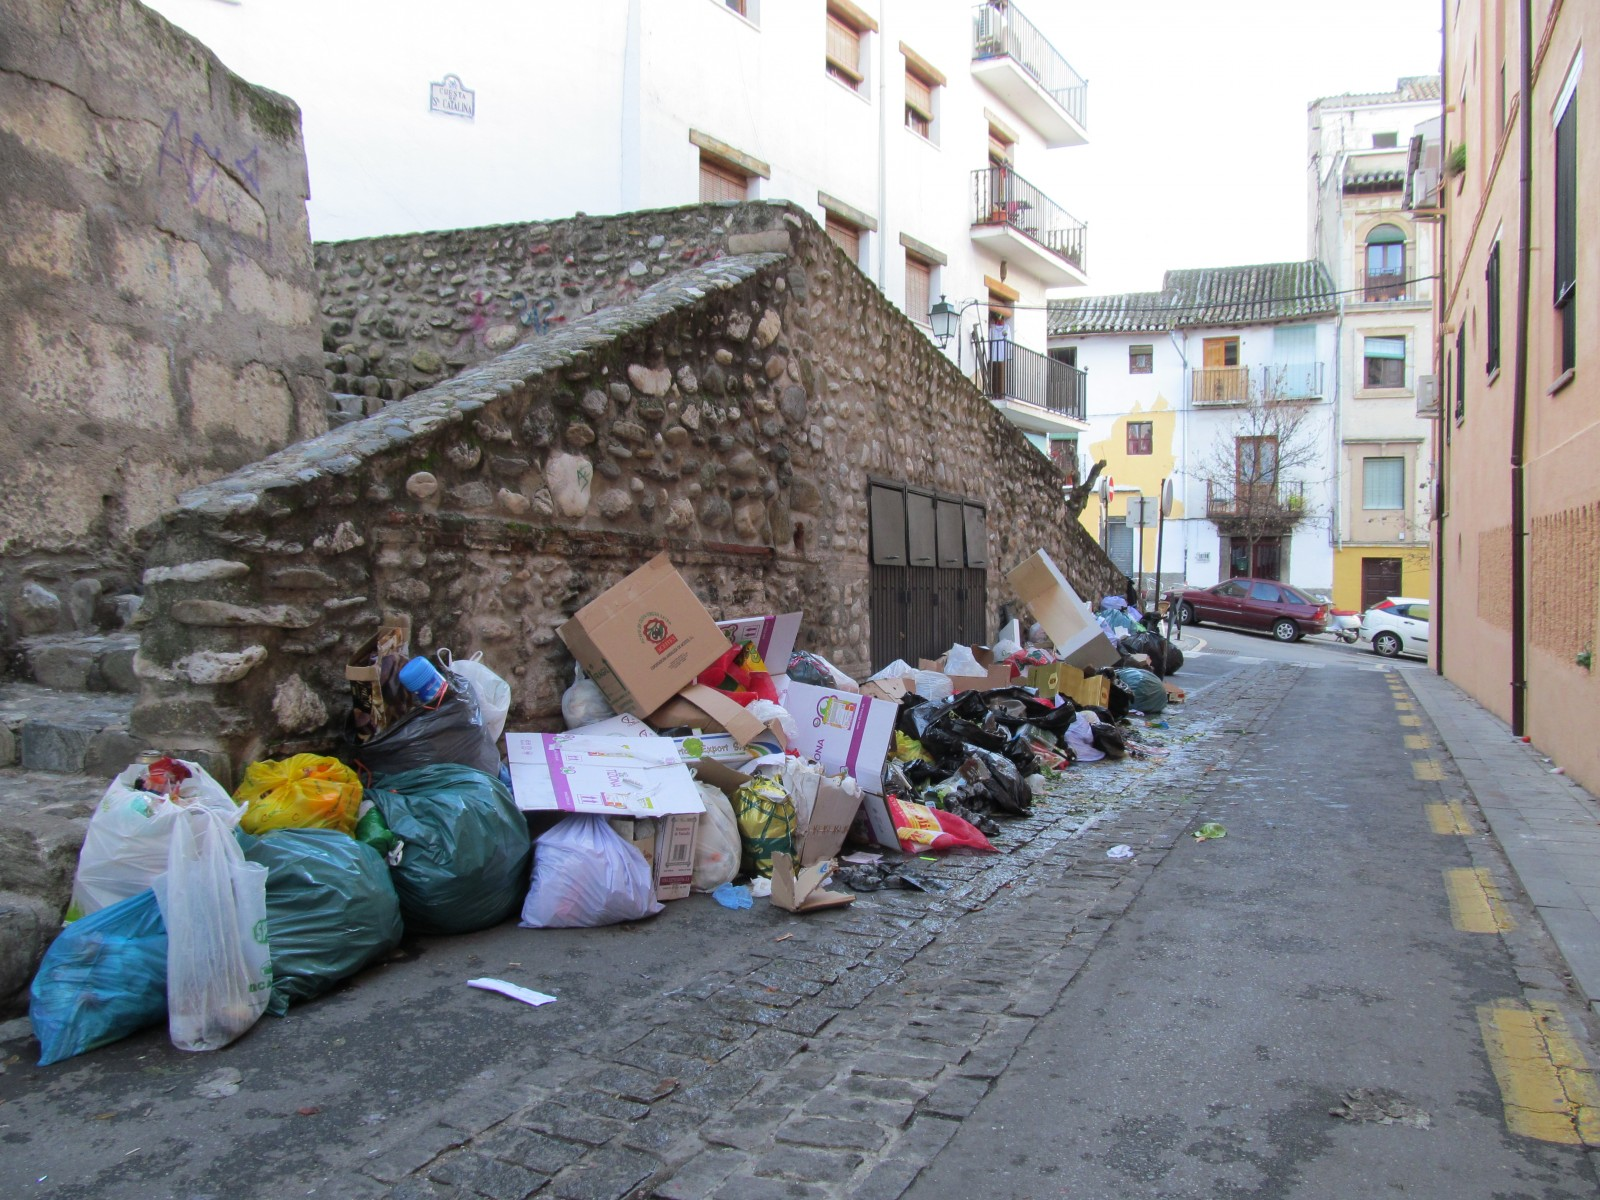 rubbish, el realejo, granada, strike, huelga, rubbish strike